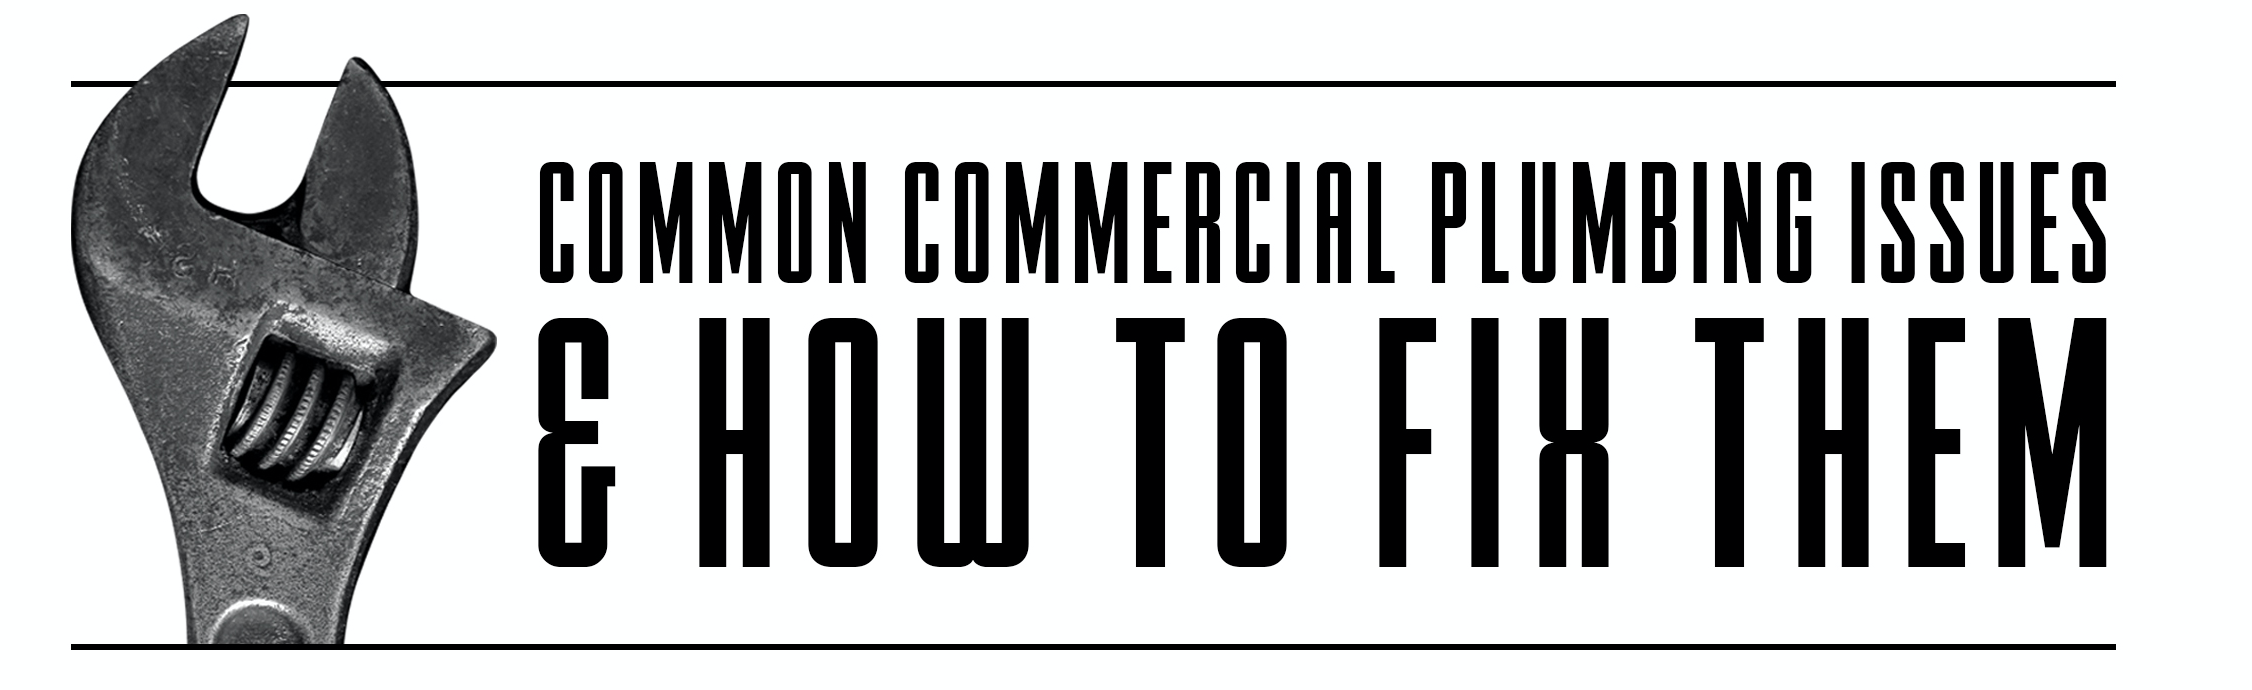 Common Commercial Plumbing Issues and How to Fix Them